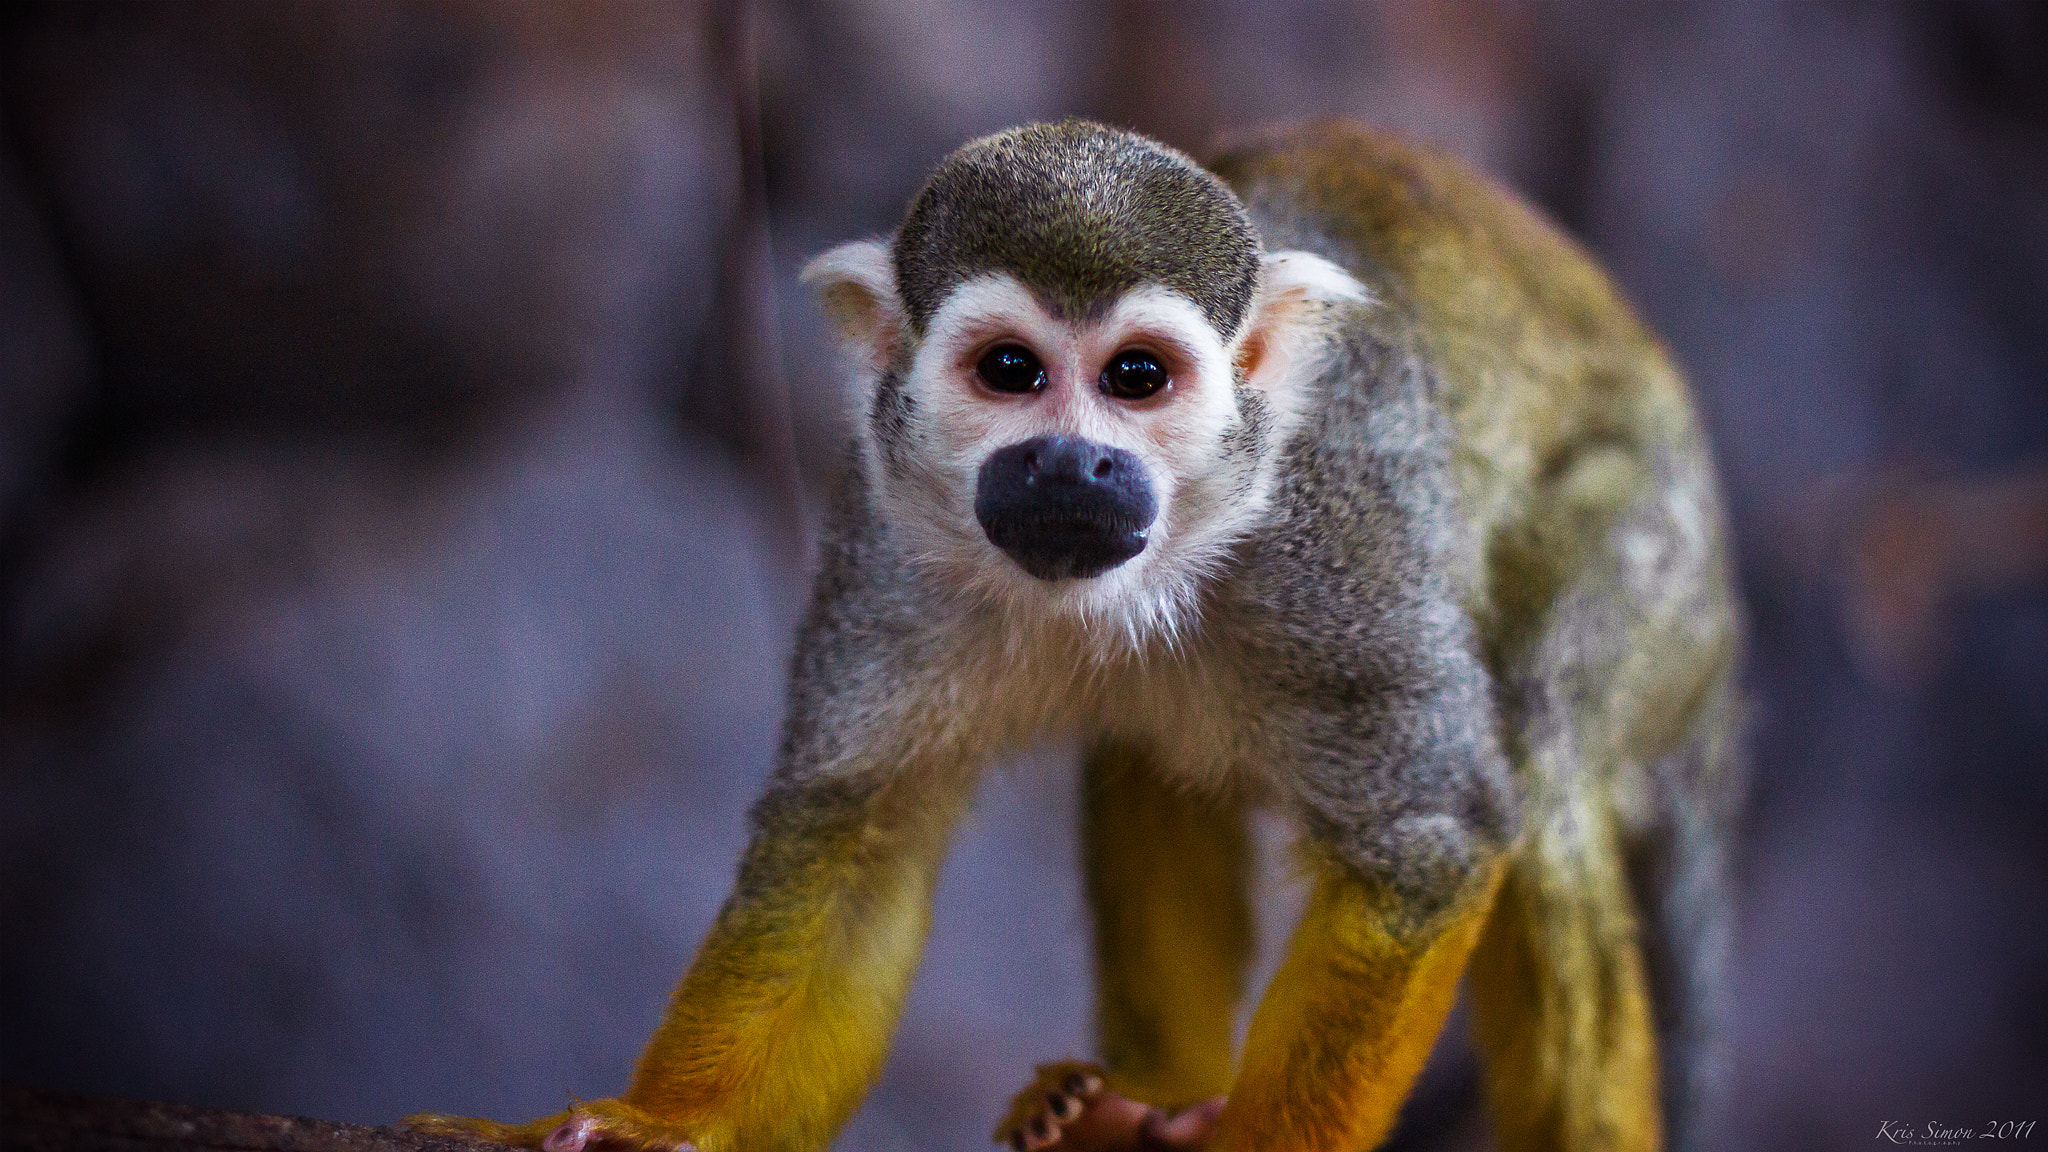 Photograph Monkey business by Kris Simon on 500px